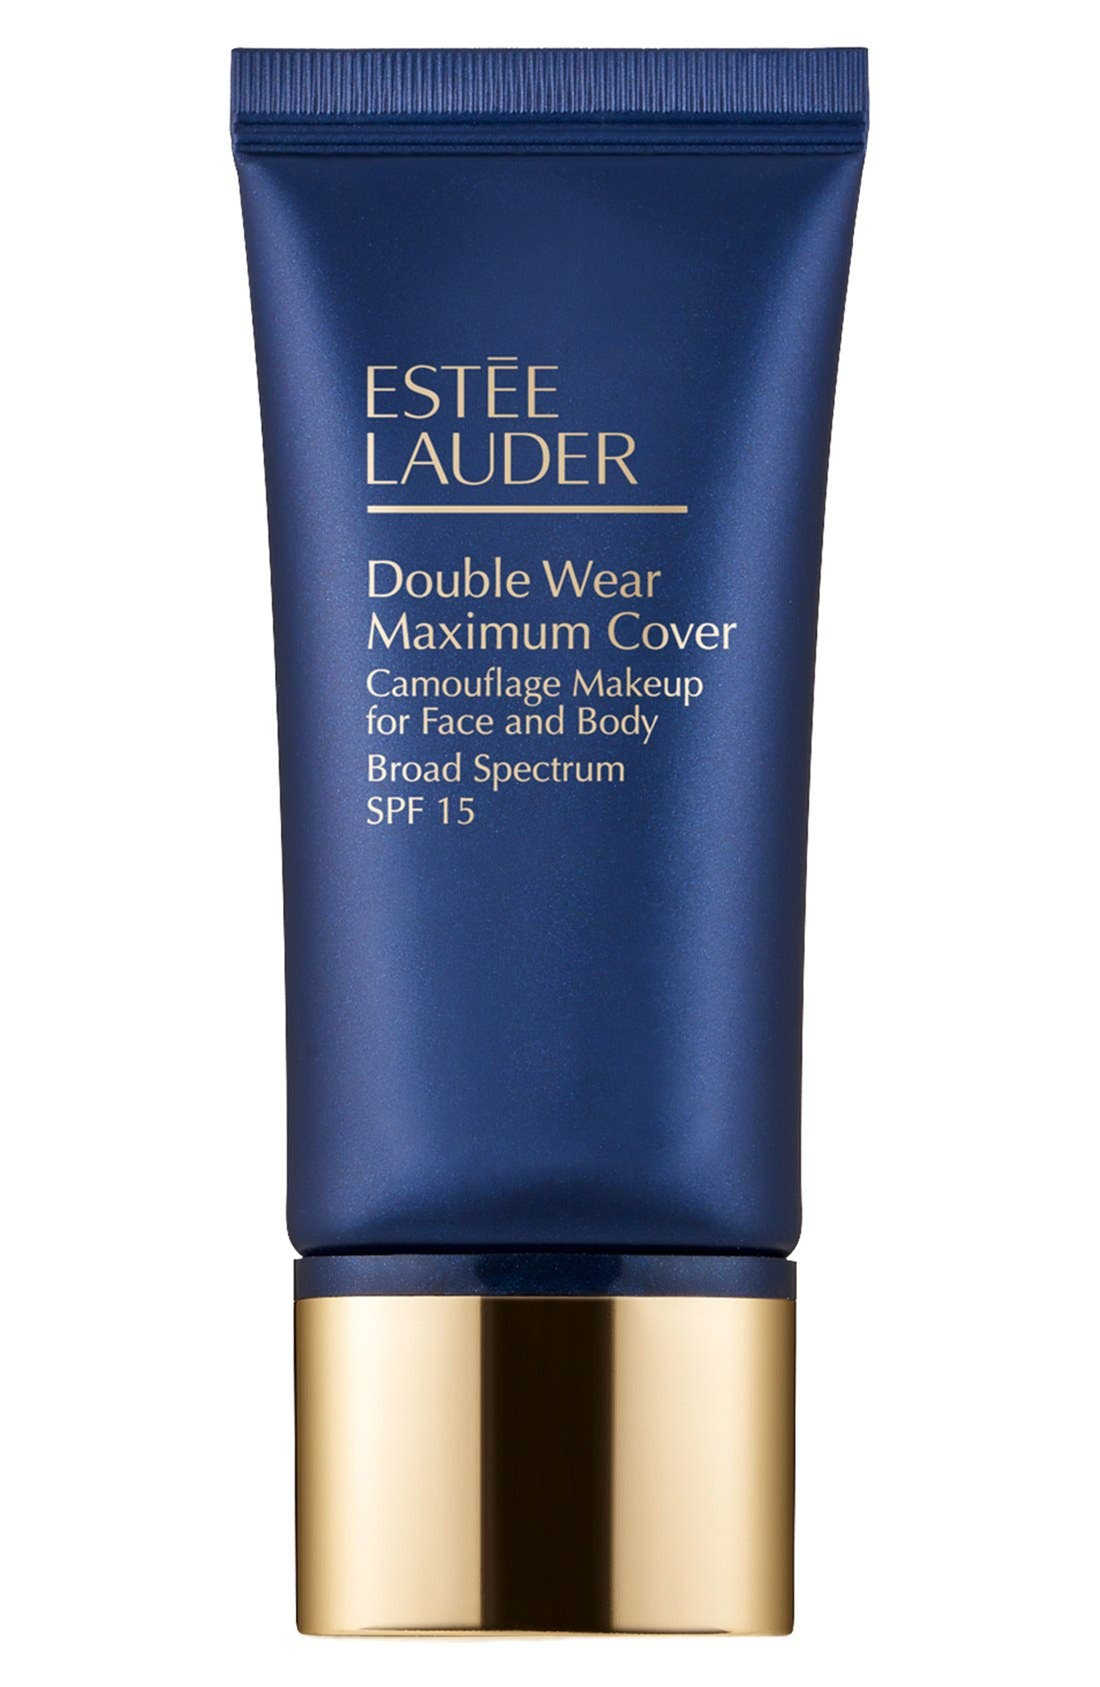 Double Wear Maximum Cover Camouflage Makeup for Face and Body SPF 15,                         Main,                         color, MEDIUM DEEP